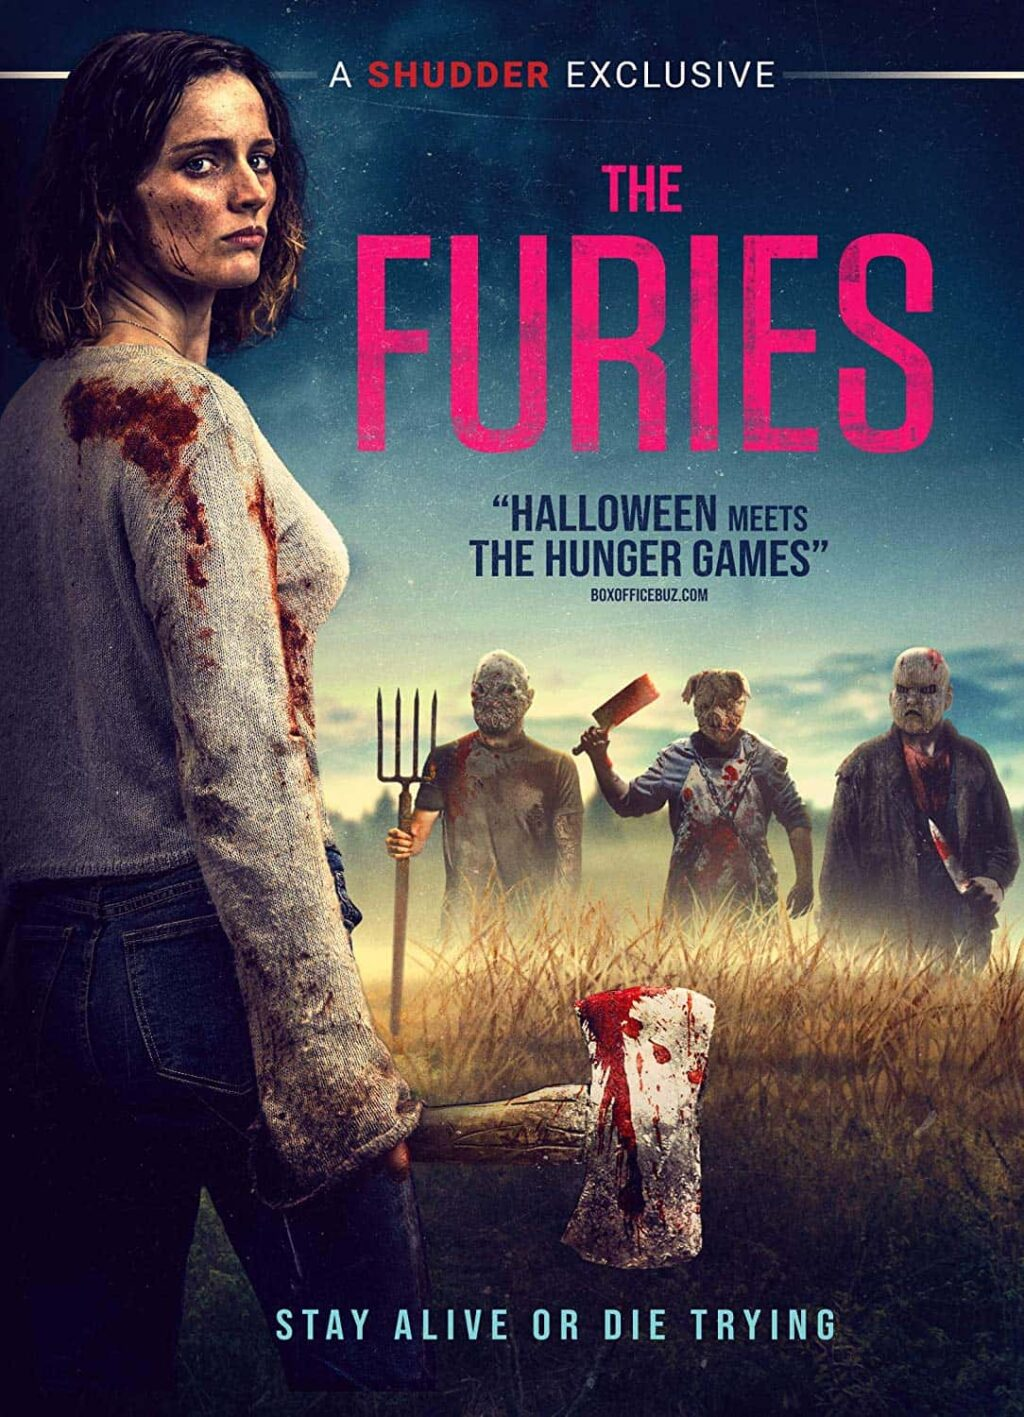 THE FURIES DVD 1024x1417 - HALLOWEEN Meets HUNGER GAMES As THE FURIES Hits DVD in March